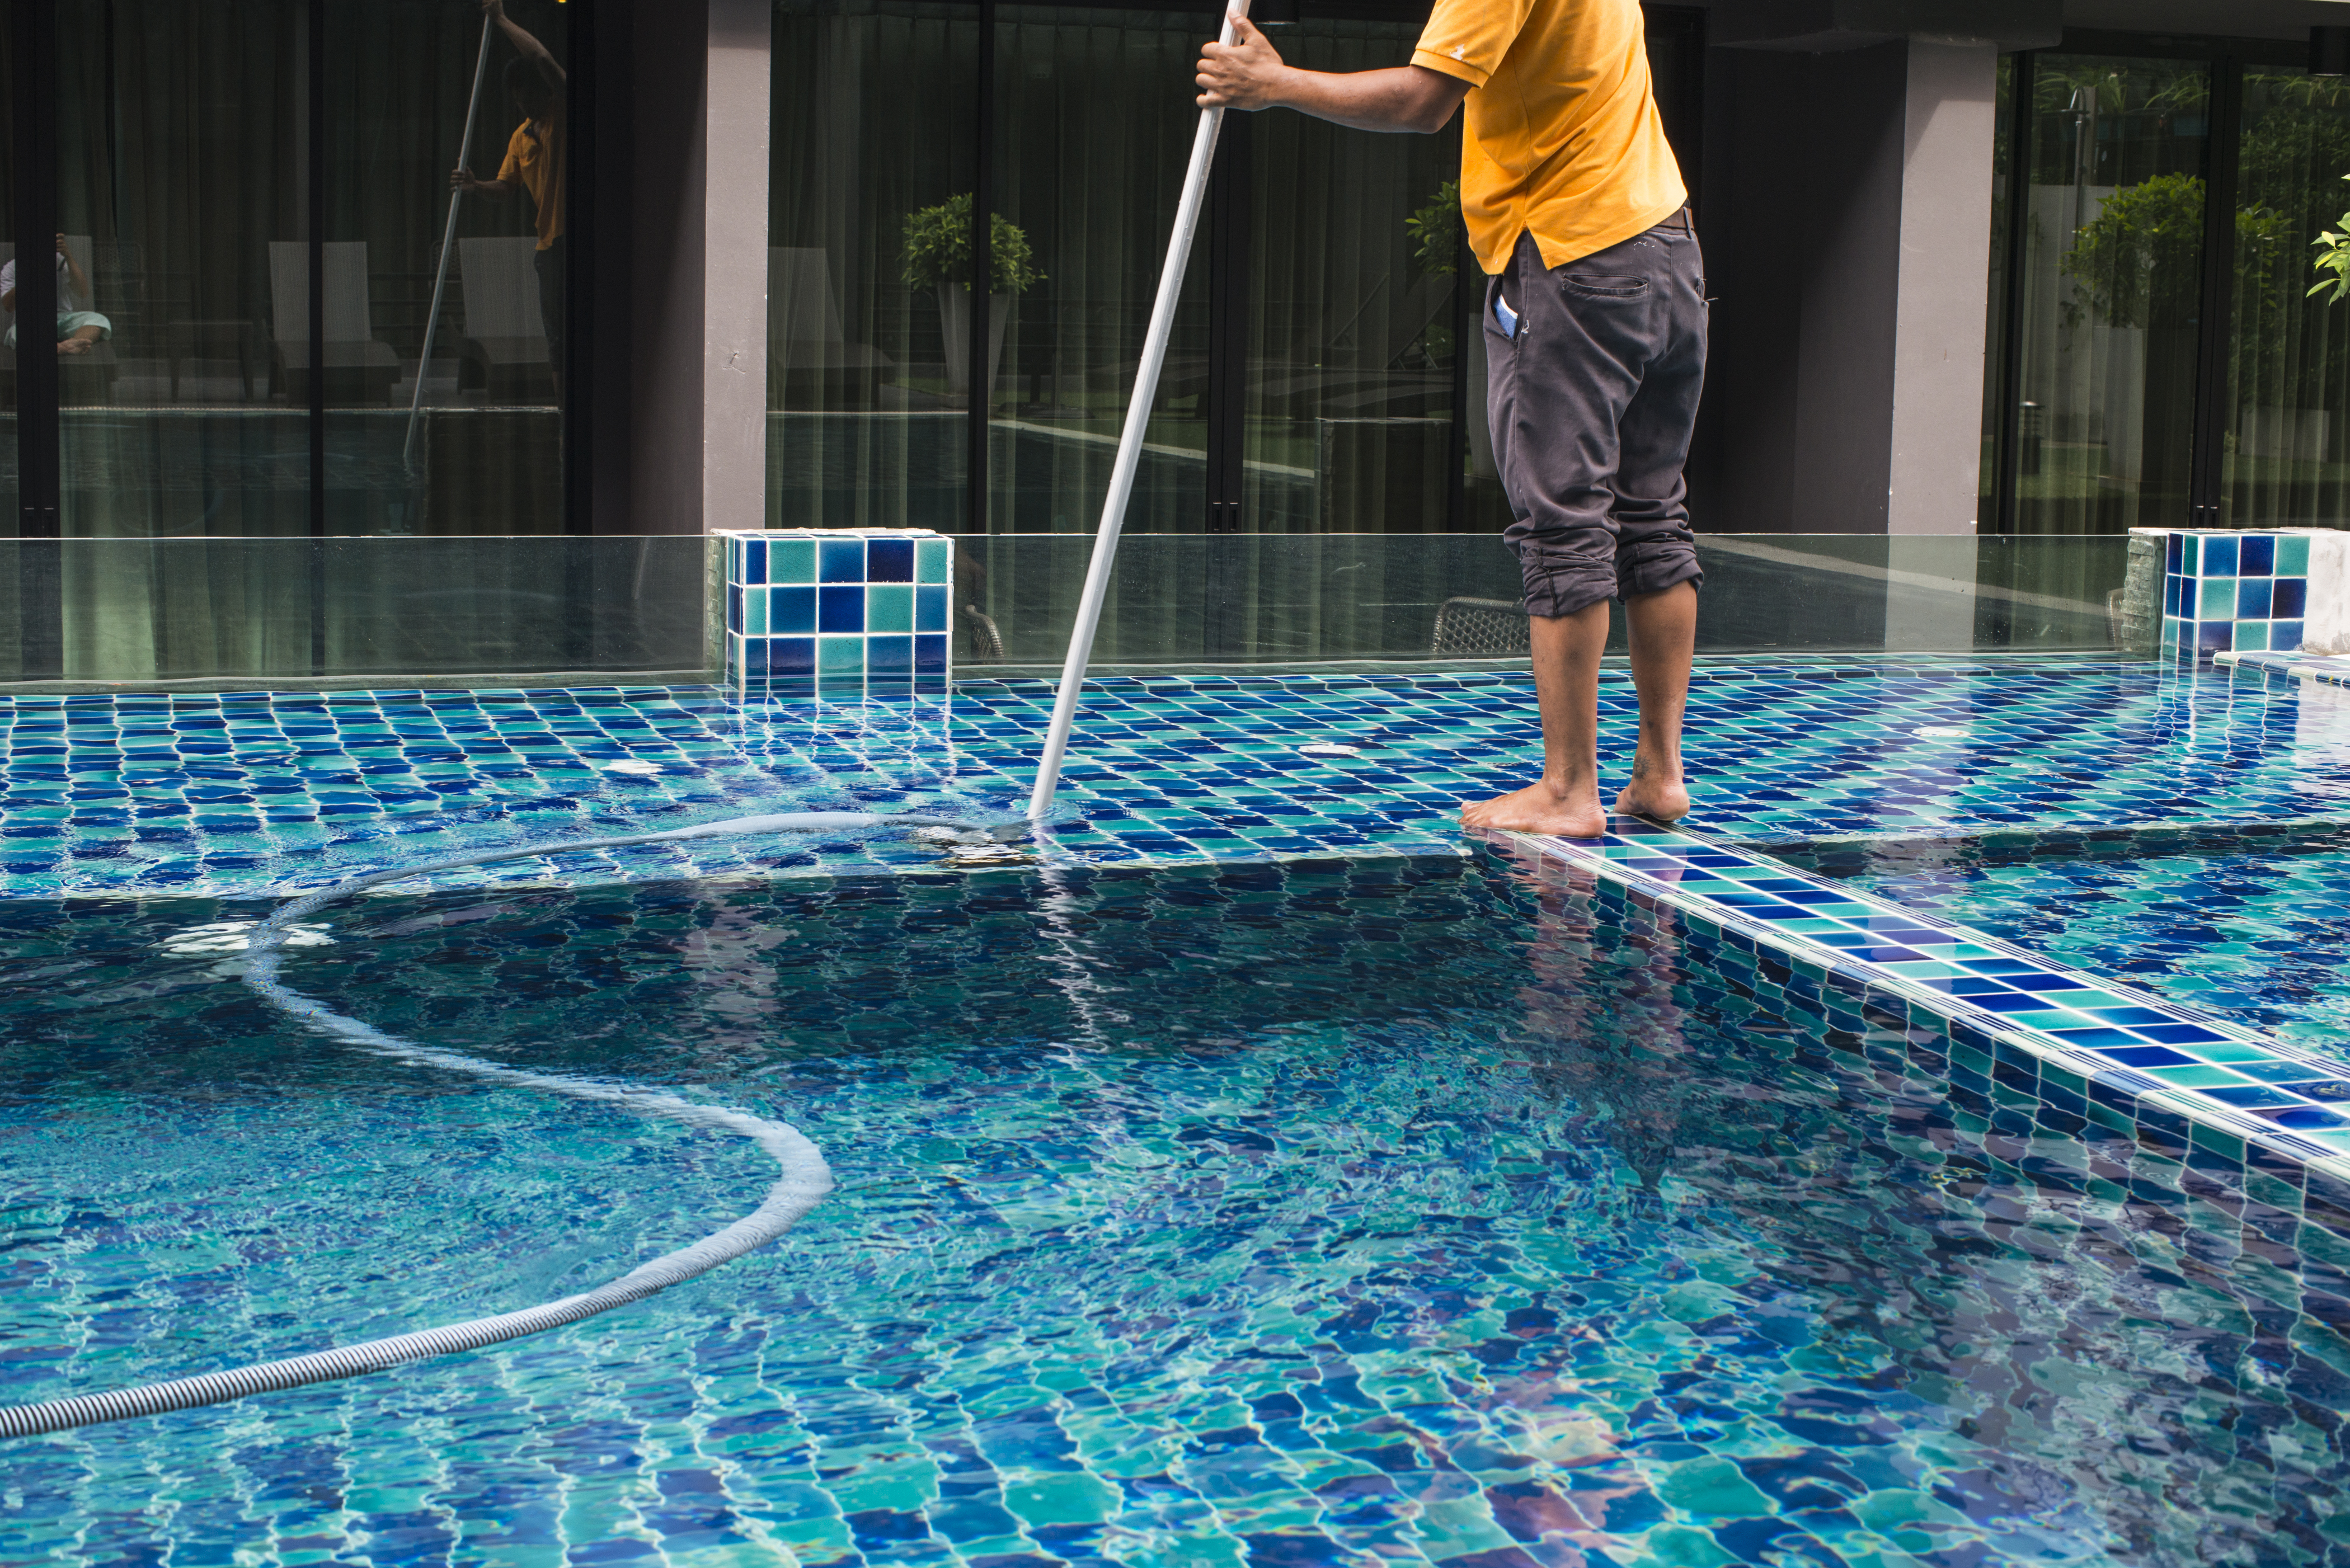 How to Vacuum a Pool to Direct Waste | Home Guides | SF Gate